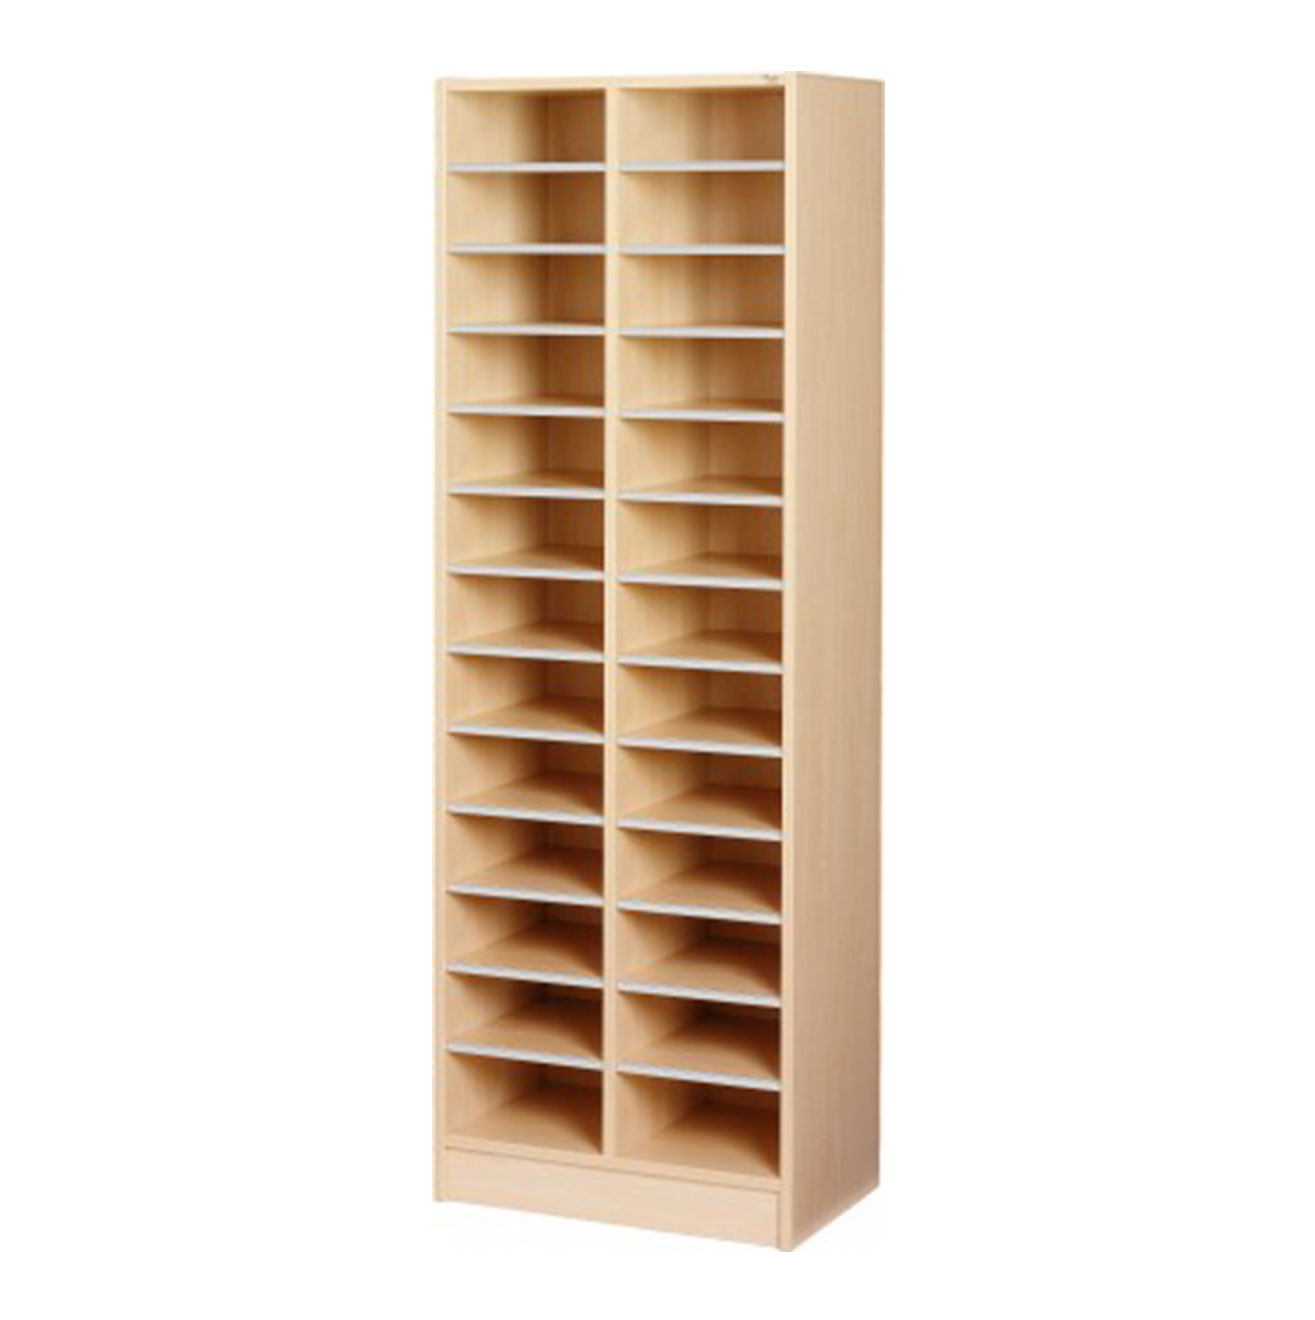 Double Pigeon Hole Cabinet - Birch